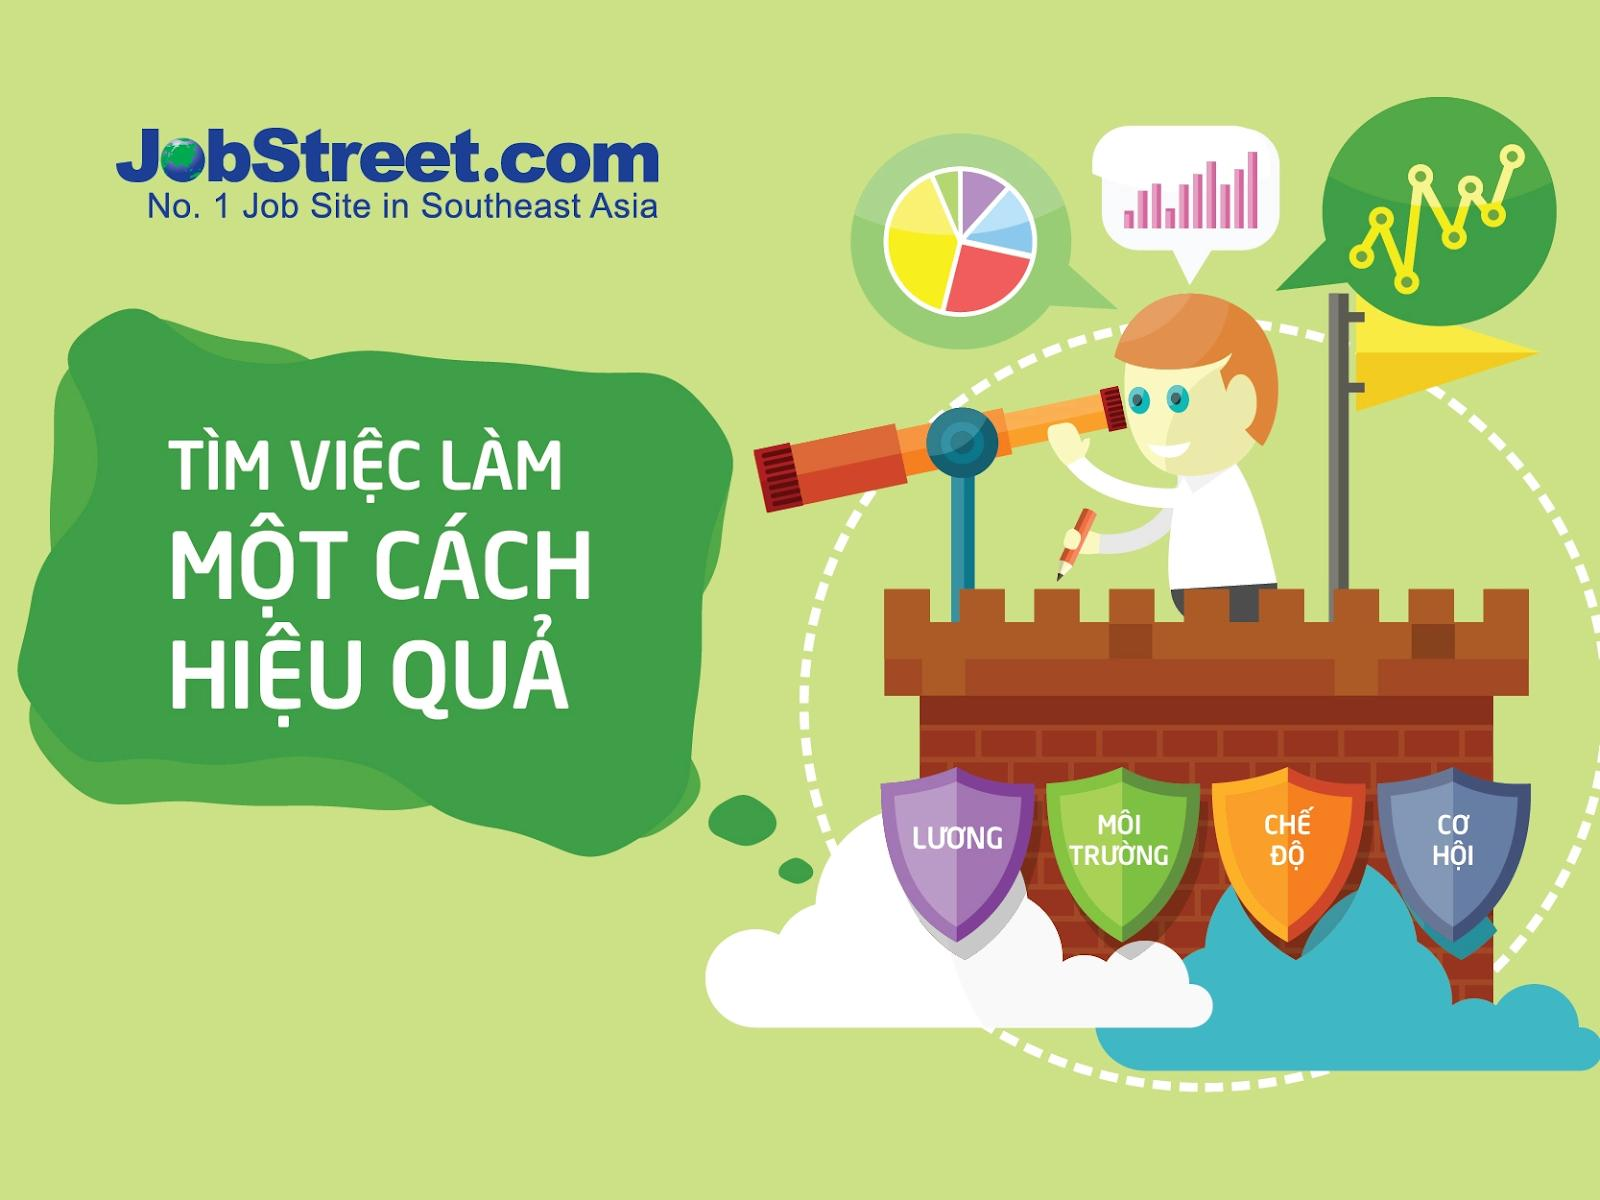 voh.com.vn.ung-dung-tim-viec-lam-anh-2